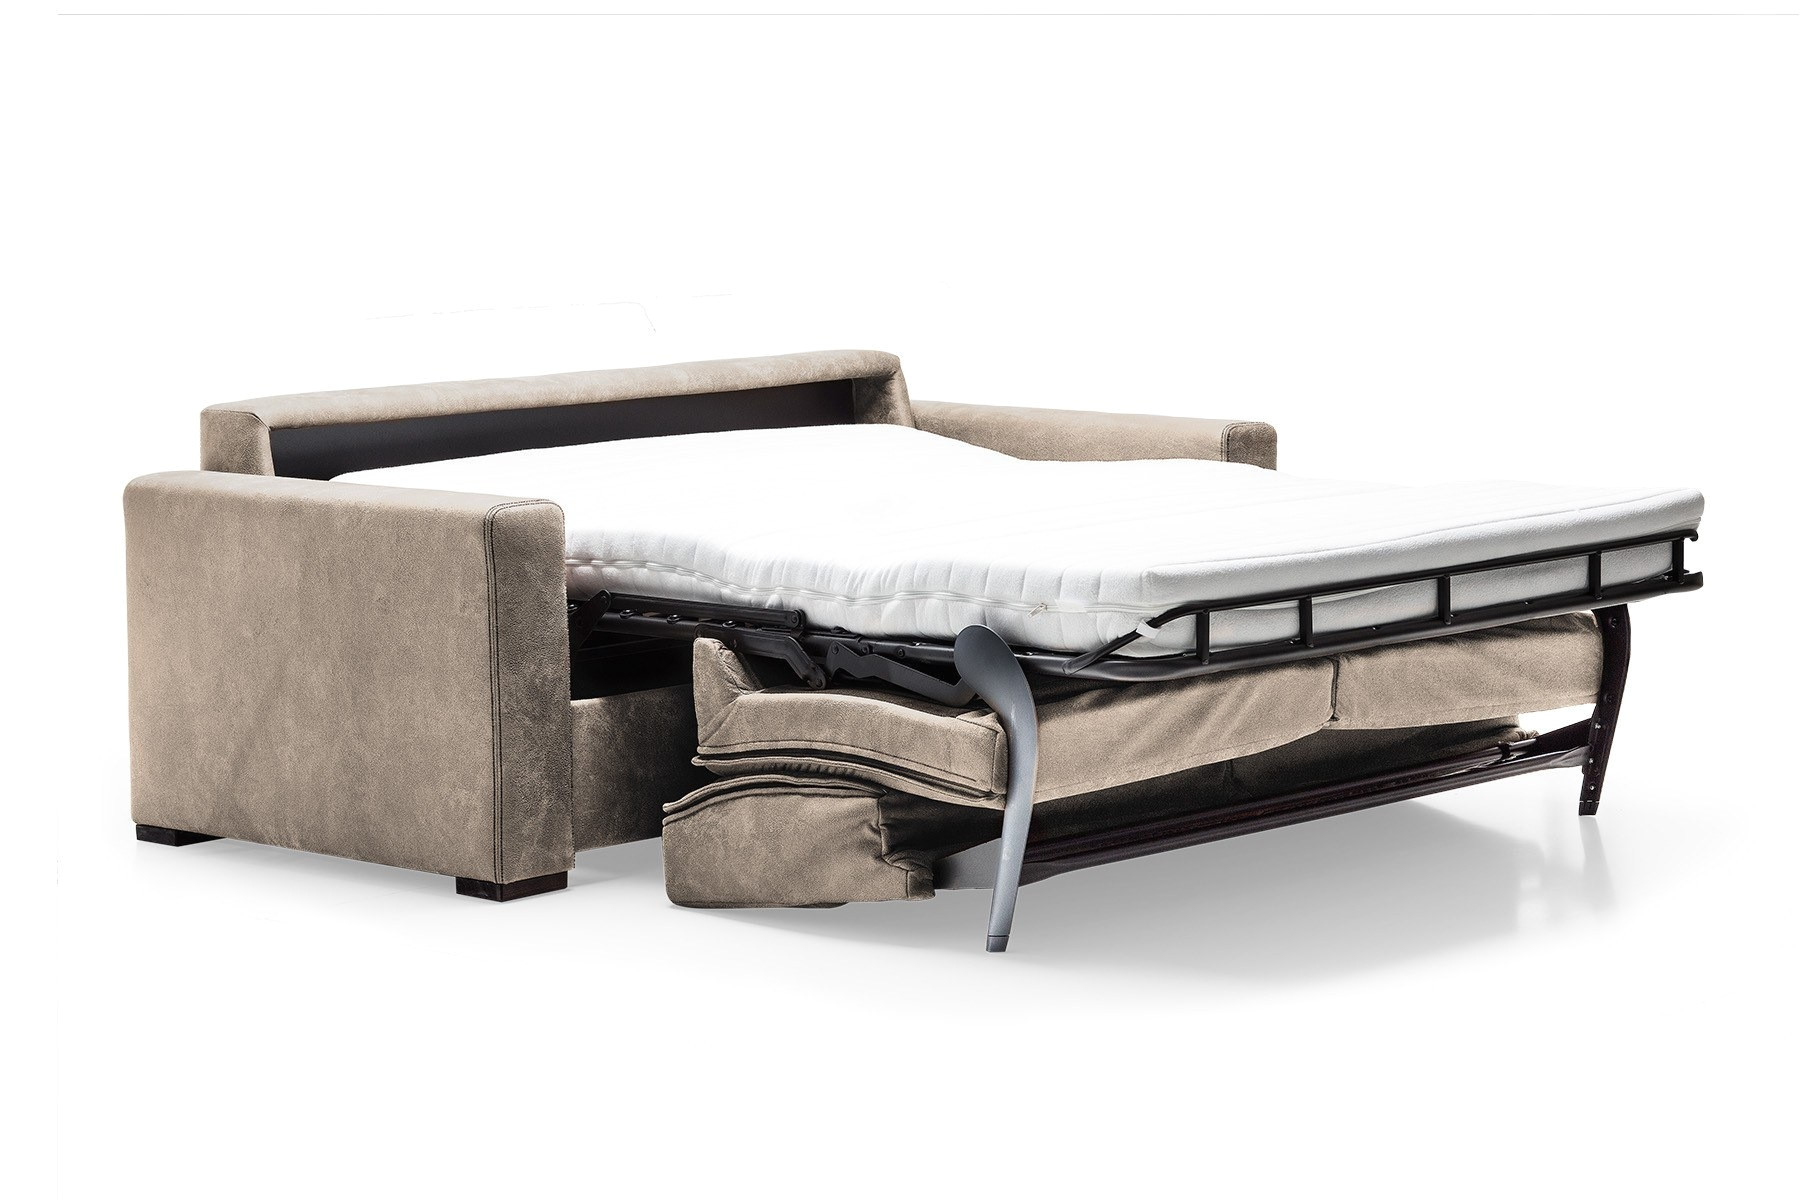 boxspring couch inspirierend boxspring schlafcouch best schlafcouch 160 200 0d einzigartiger bilder of boxspring